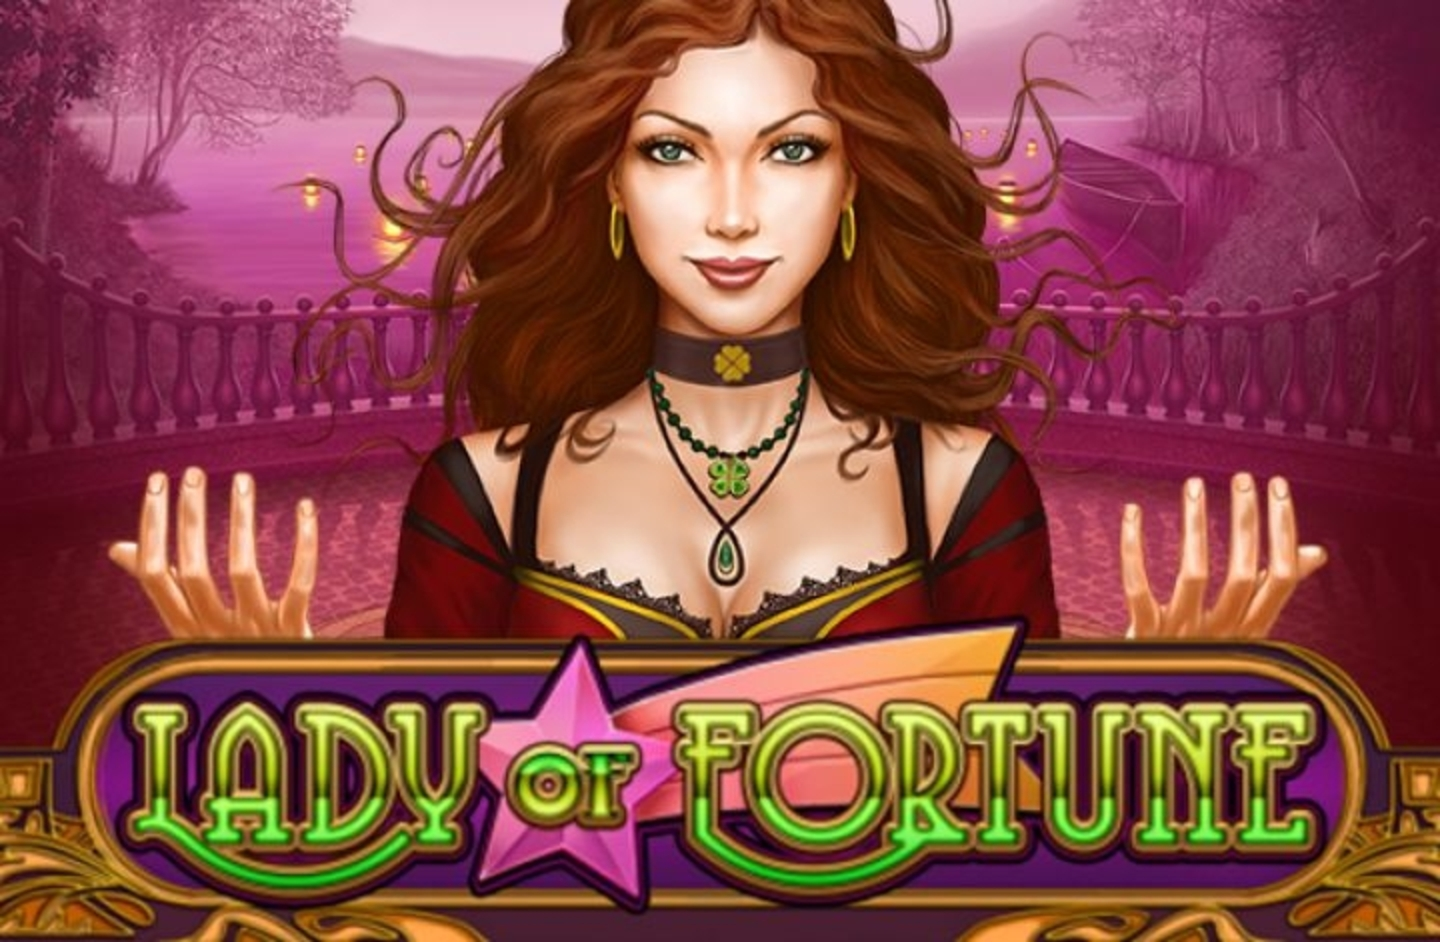 The Lady of Fortune Online Slot Demo Game by Play'n Go